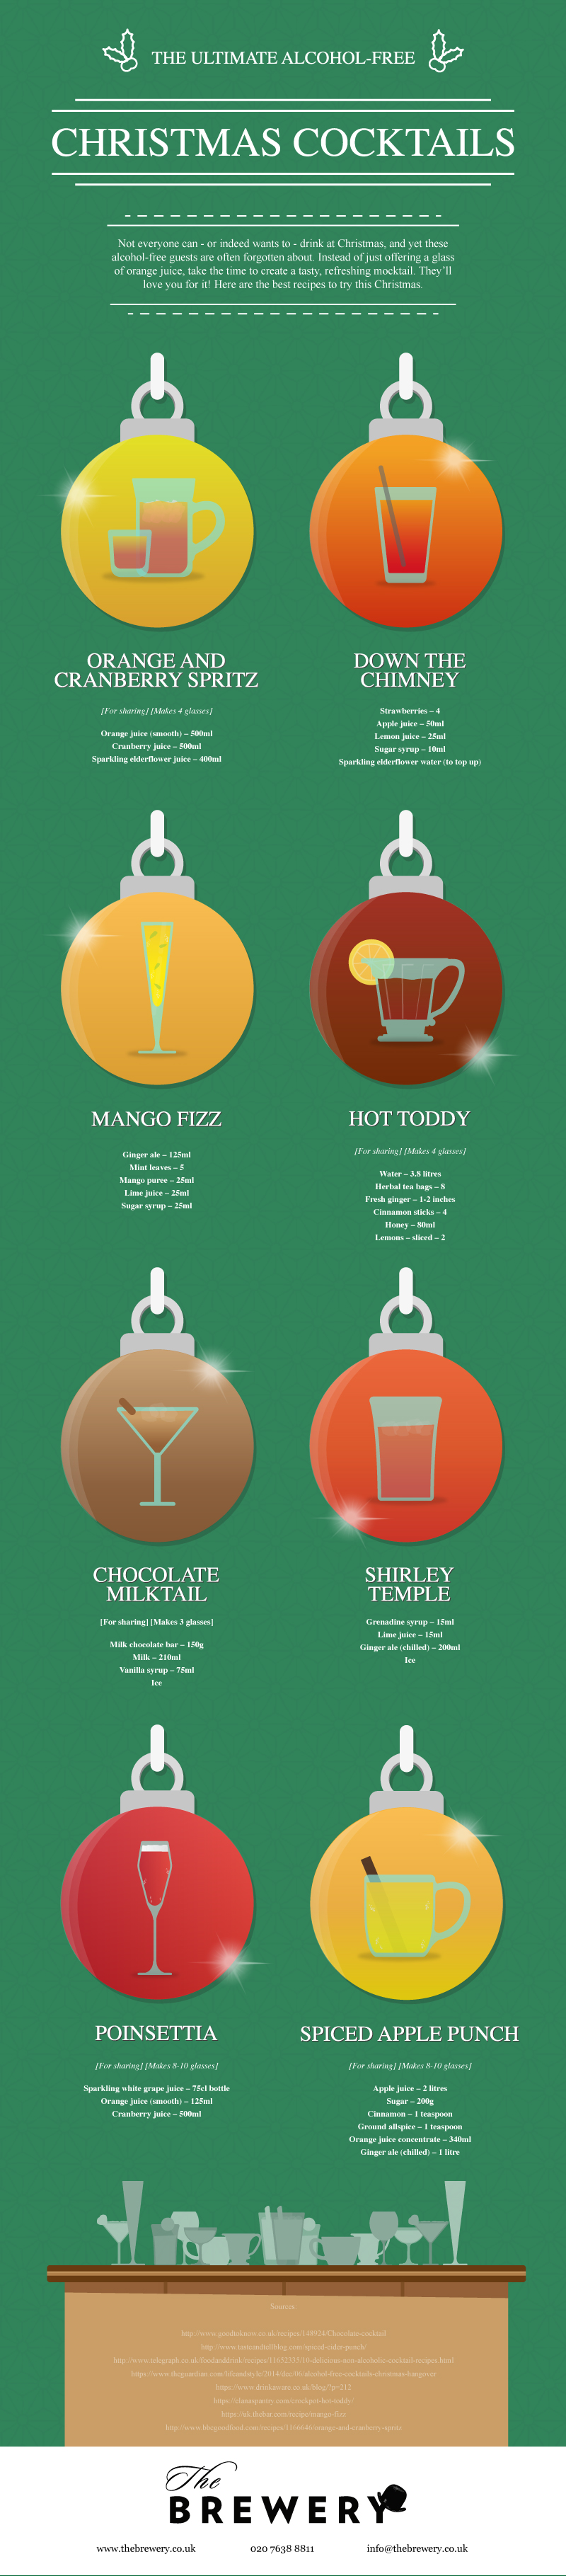 The Ultimate Alcohol-Free Christmas Cocktails